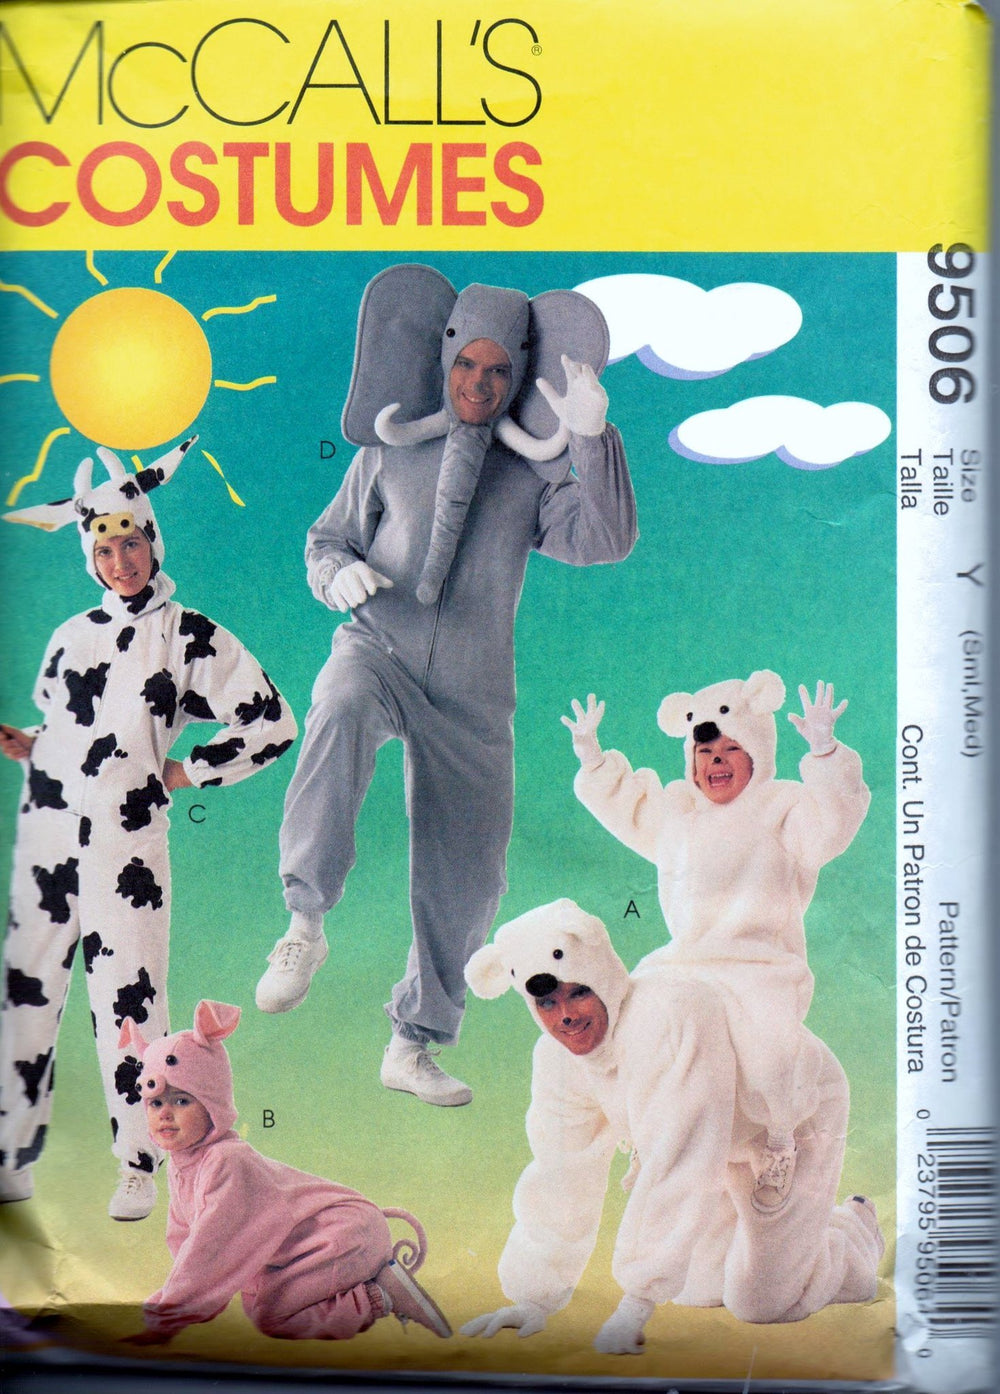 McCalls 9506 Adult Halloween Costume Pattern Bear Pig Cow Elephant Ladies Mens - VintageStitching - Vintage Sewing Patterns